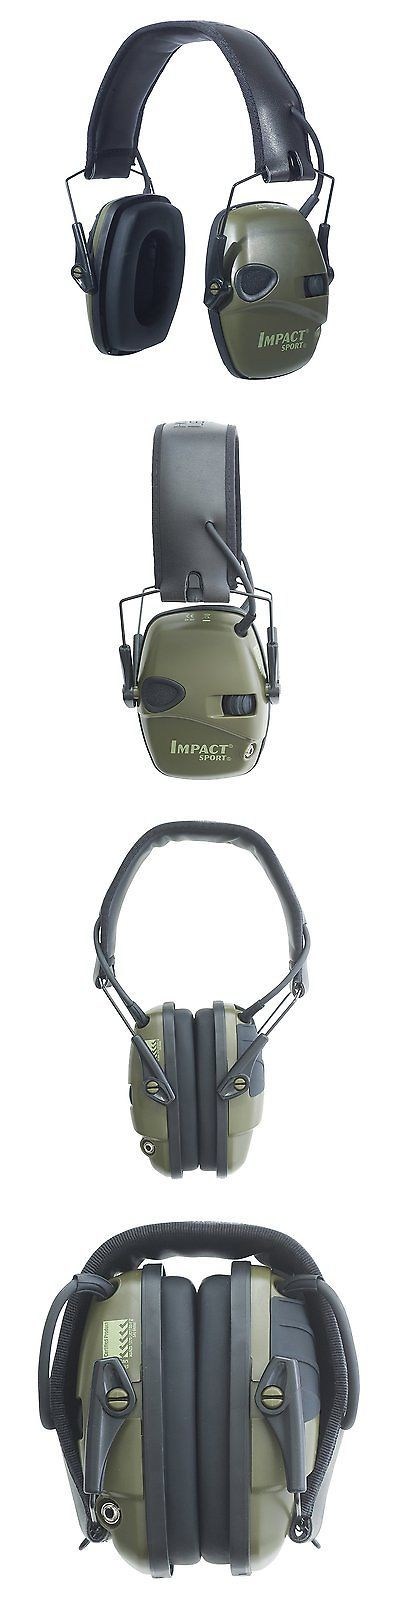 Hearing Protection 73942: Hearing Protection Muff Noise Gun Earmuffs Shooting Electronic Mp3 Headphones -> BUY IT NOW ONLY: $49.14 on eBay!